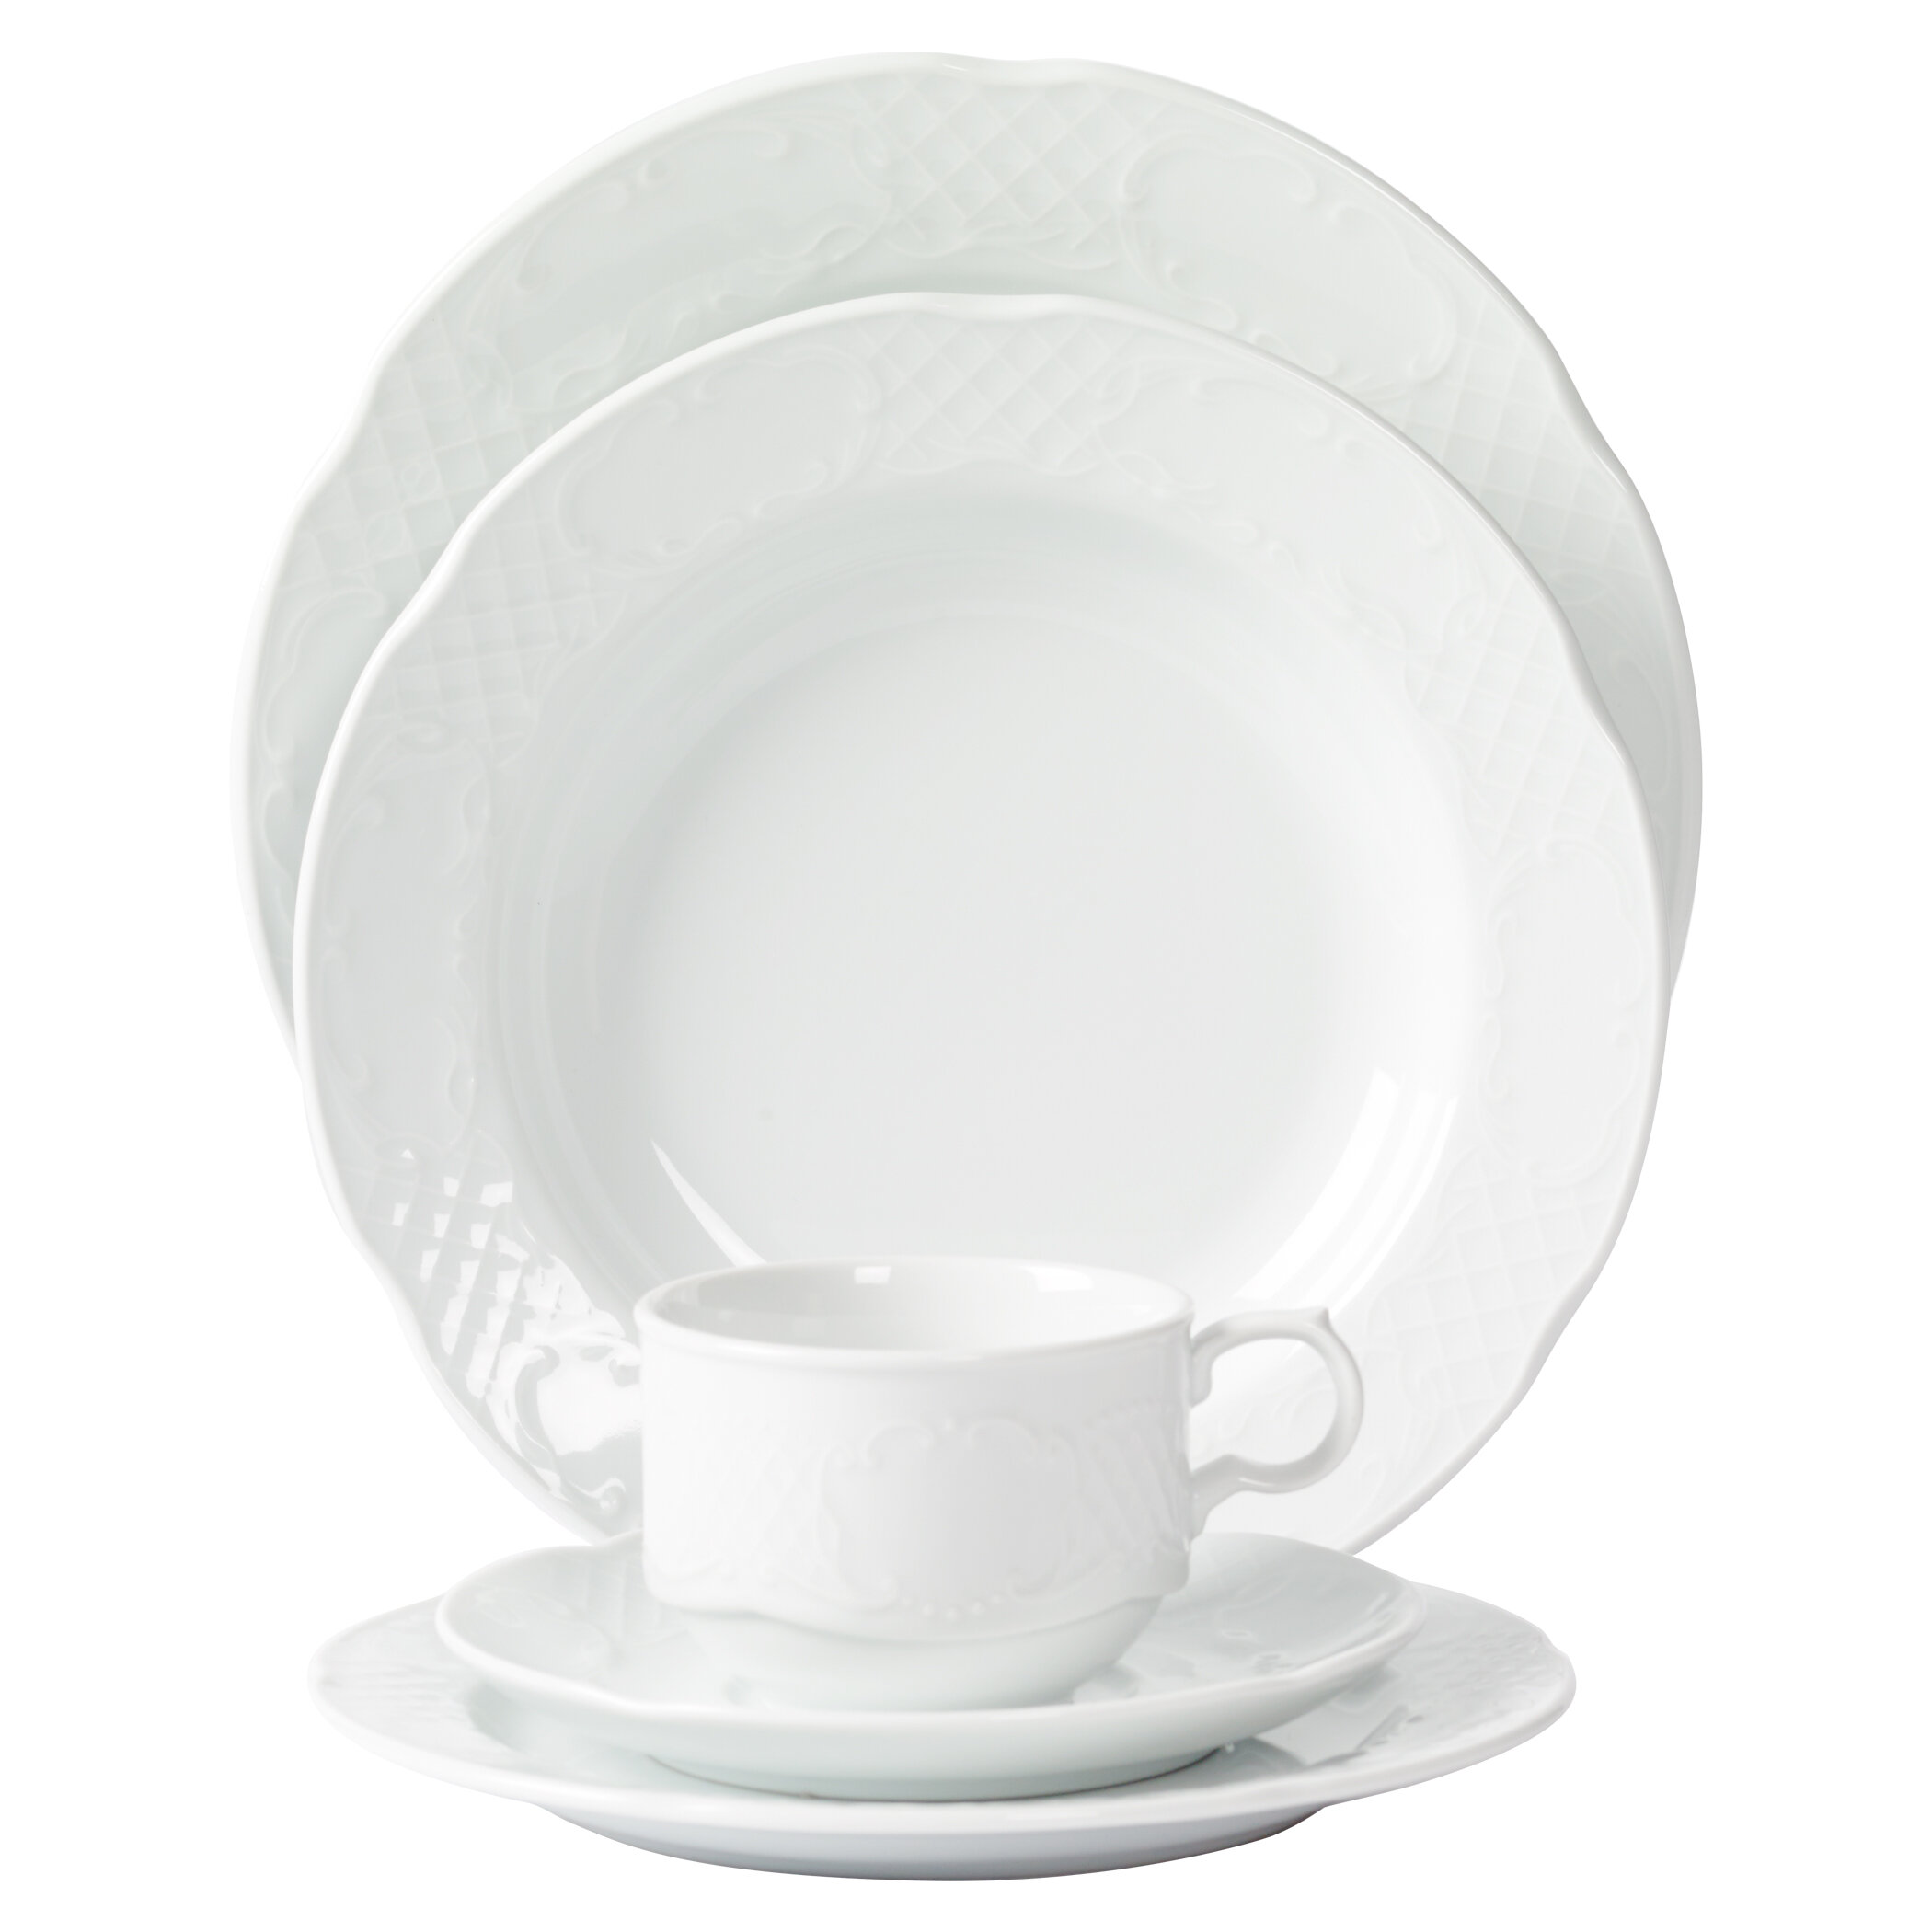 Mitterteich Flora Scalloped Embossed Porcelain 20 Piece Dinnerware Set Service for 4 | Wayfair  sc 1 st  Wayfair & Mitterteich Flora Scalloped Embossed Porcelain 20 Piece Dinnerware ...